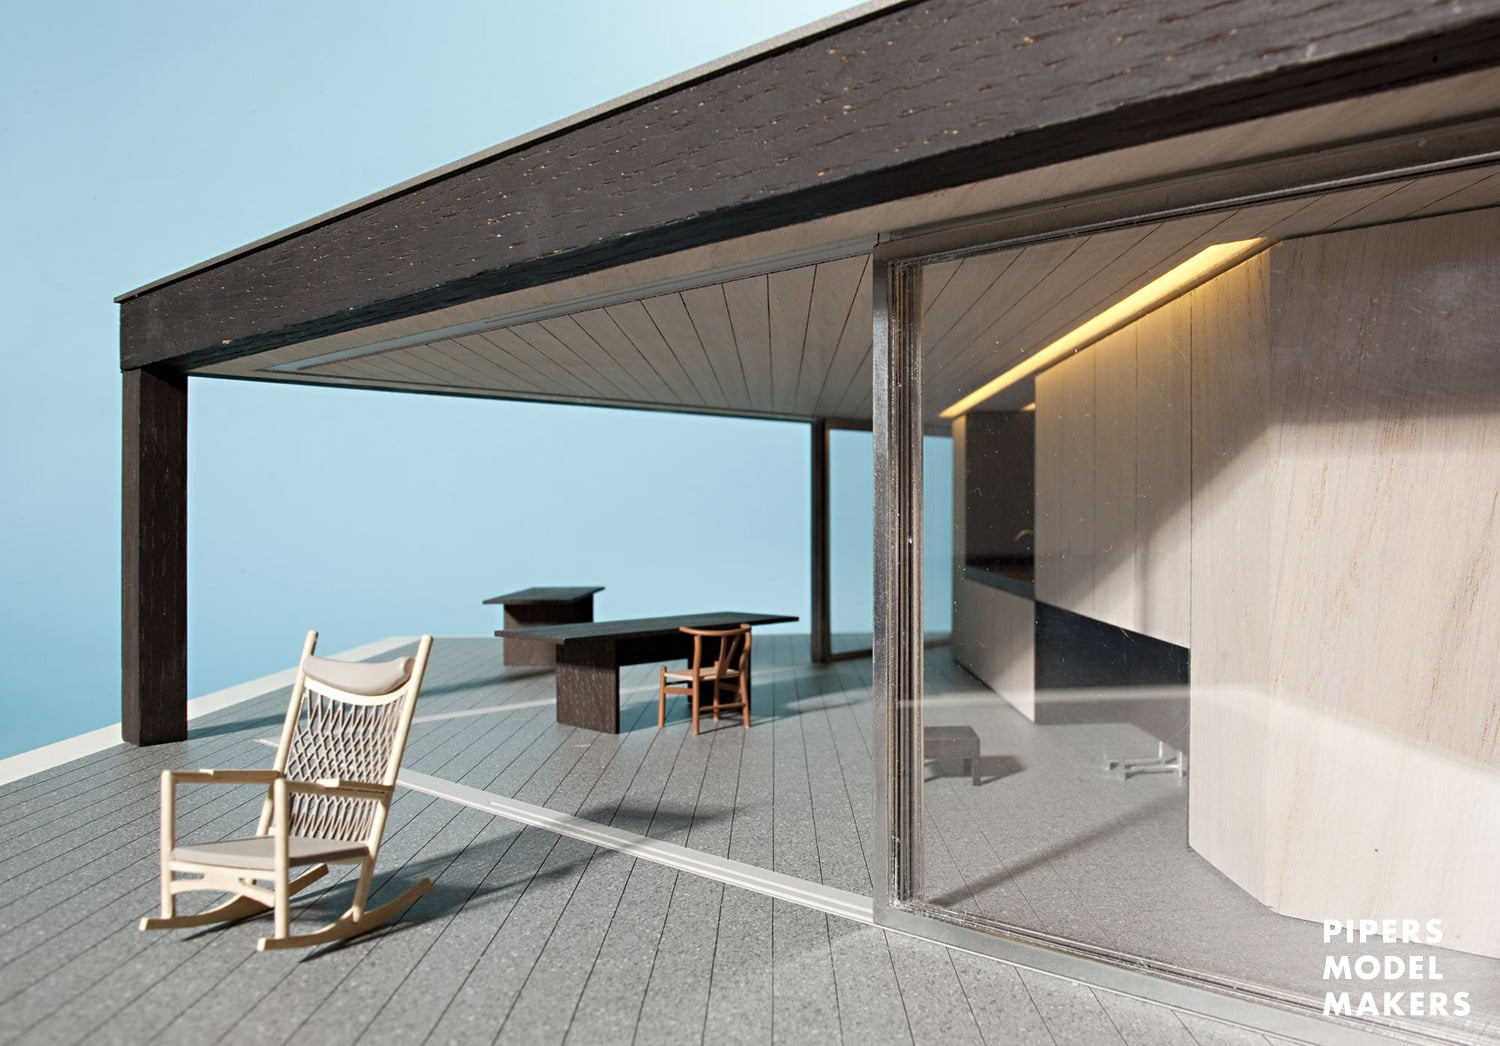 http://Sweden%20House%20Architectural%20Model